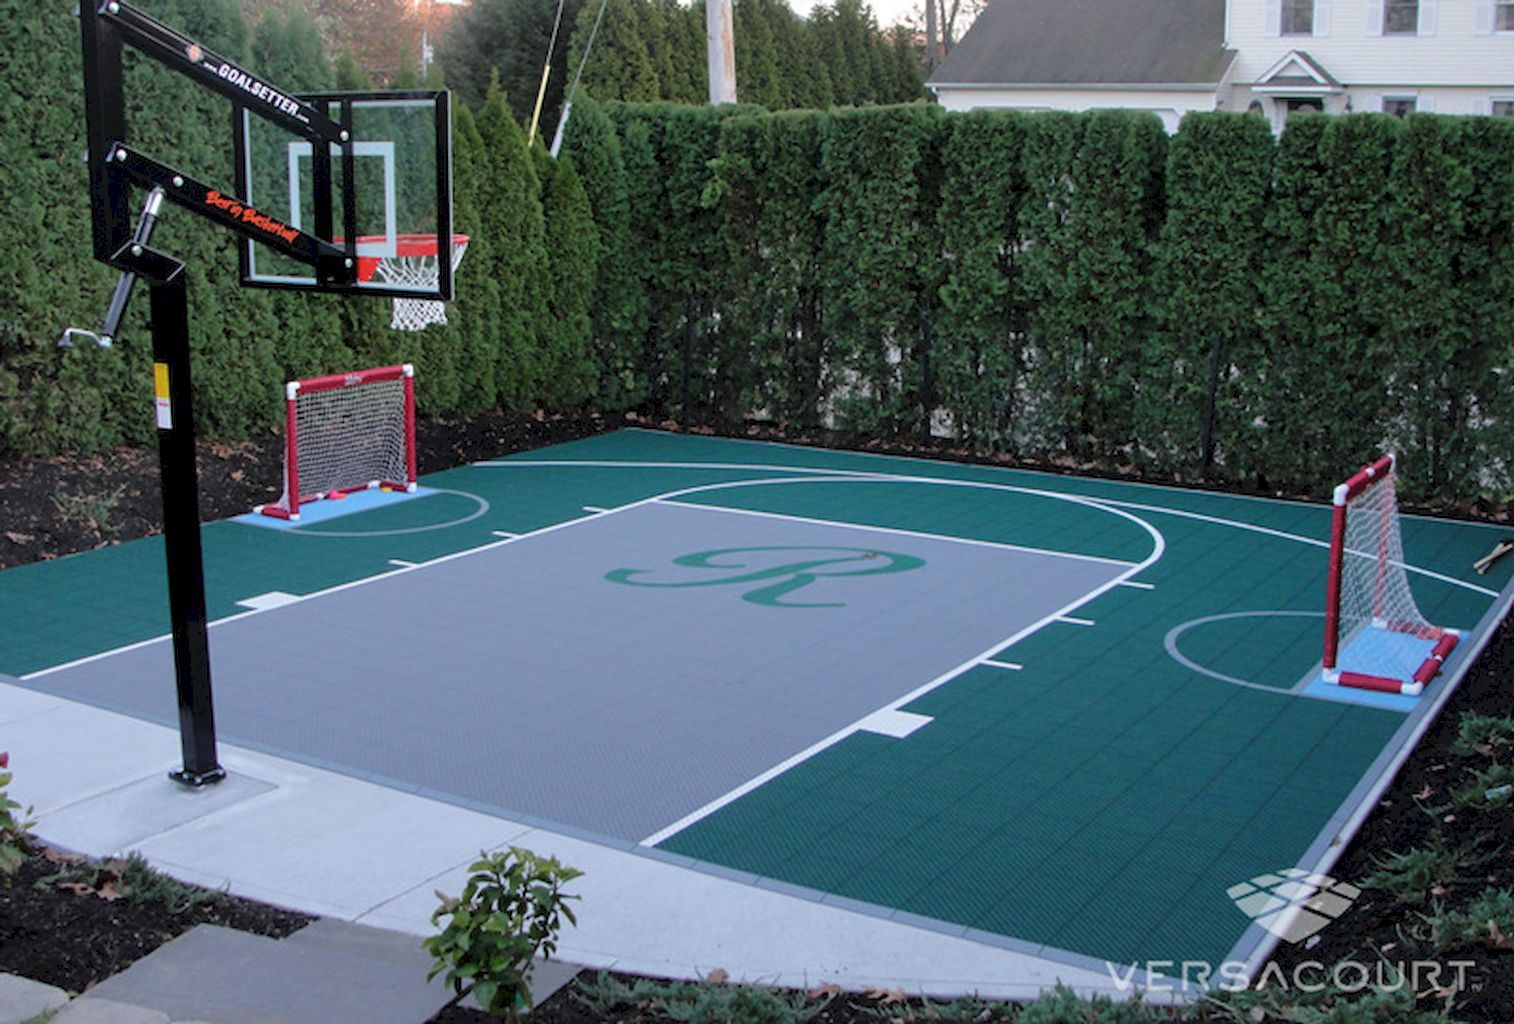 Top 27 Sport Court Backyard Design Ideas | Bauen für Kinder ZC74